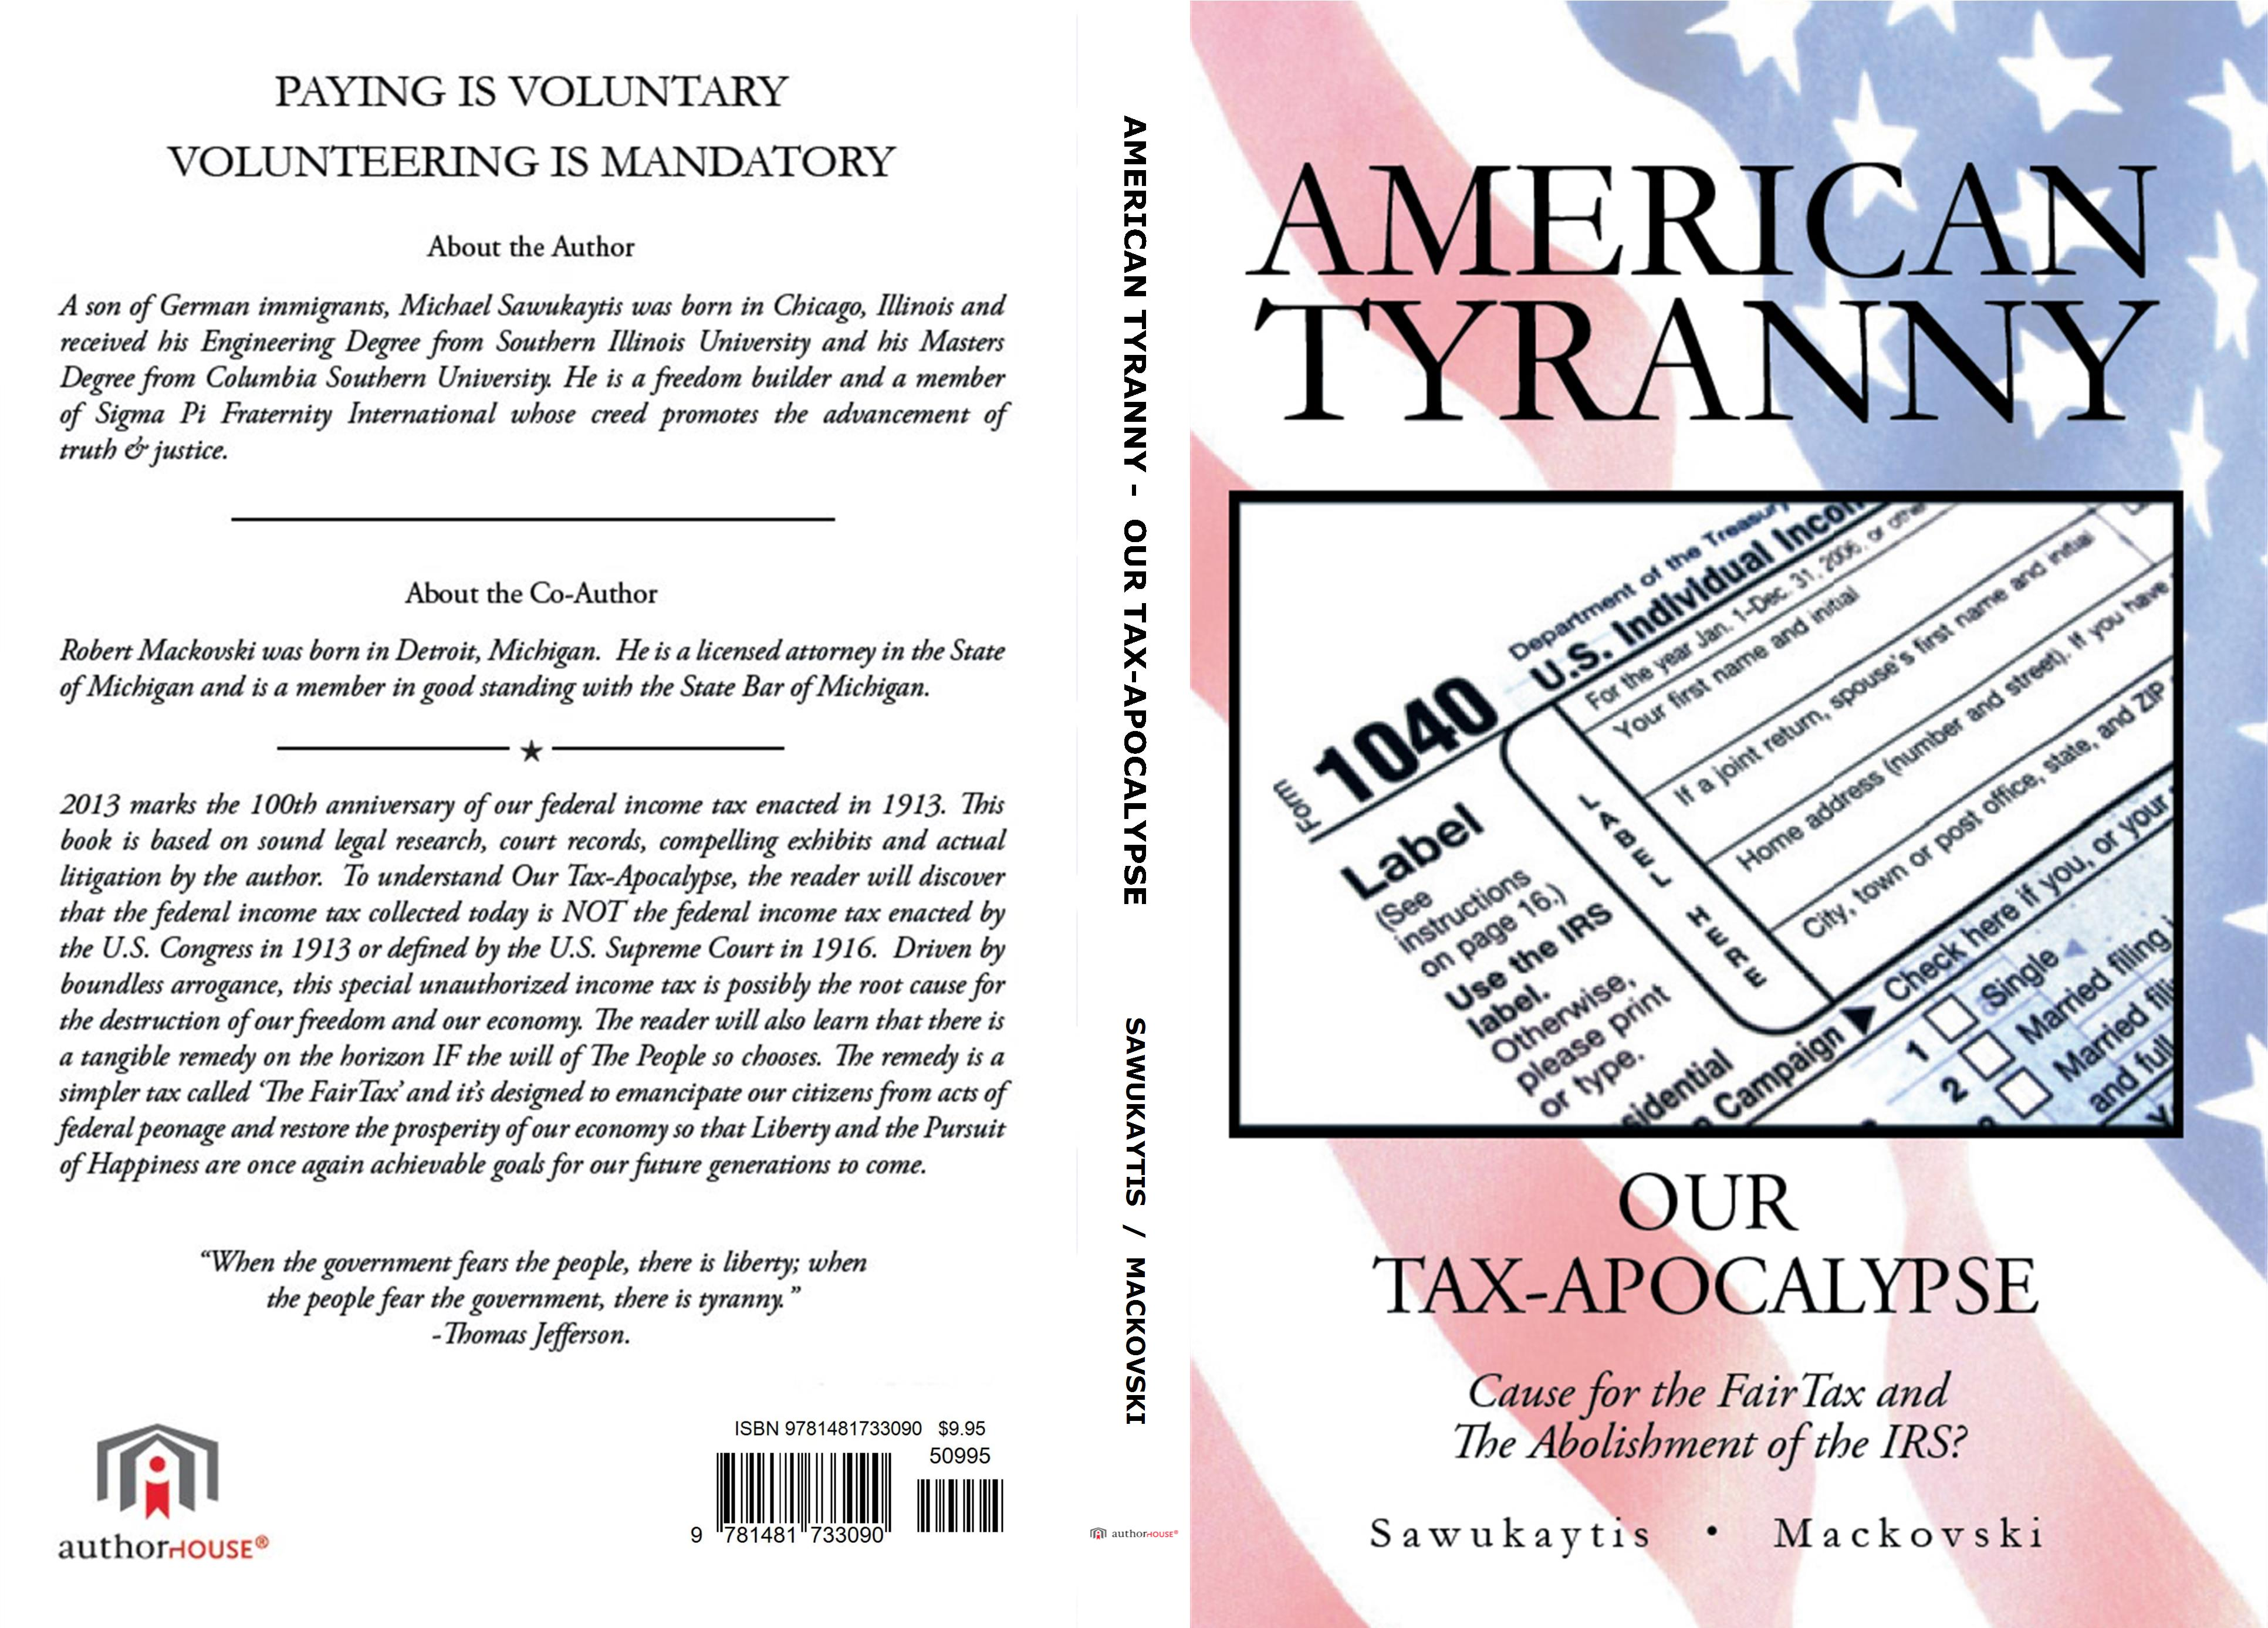 AMERICAN TYRANNY cover image